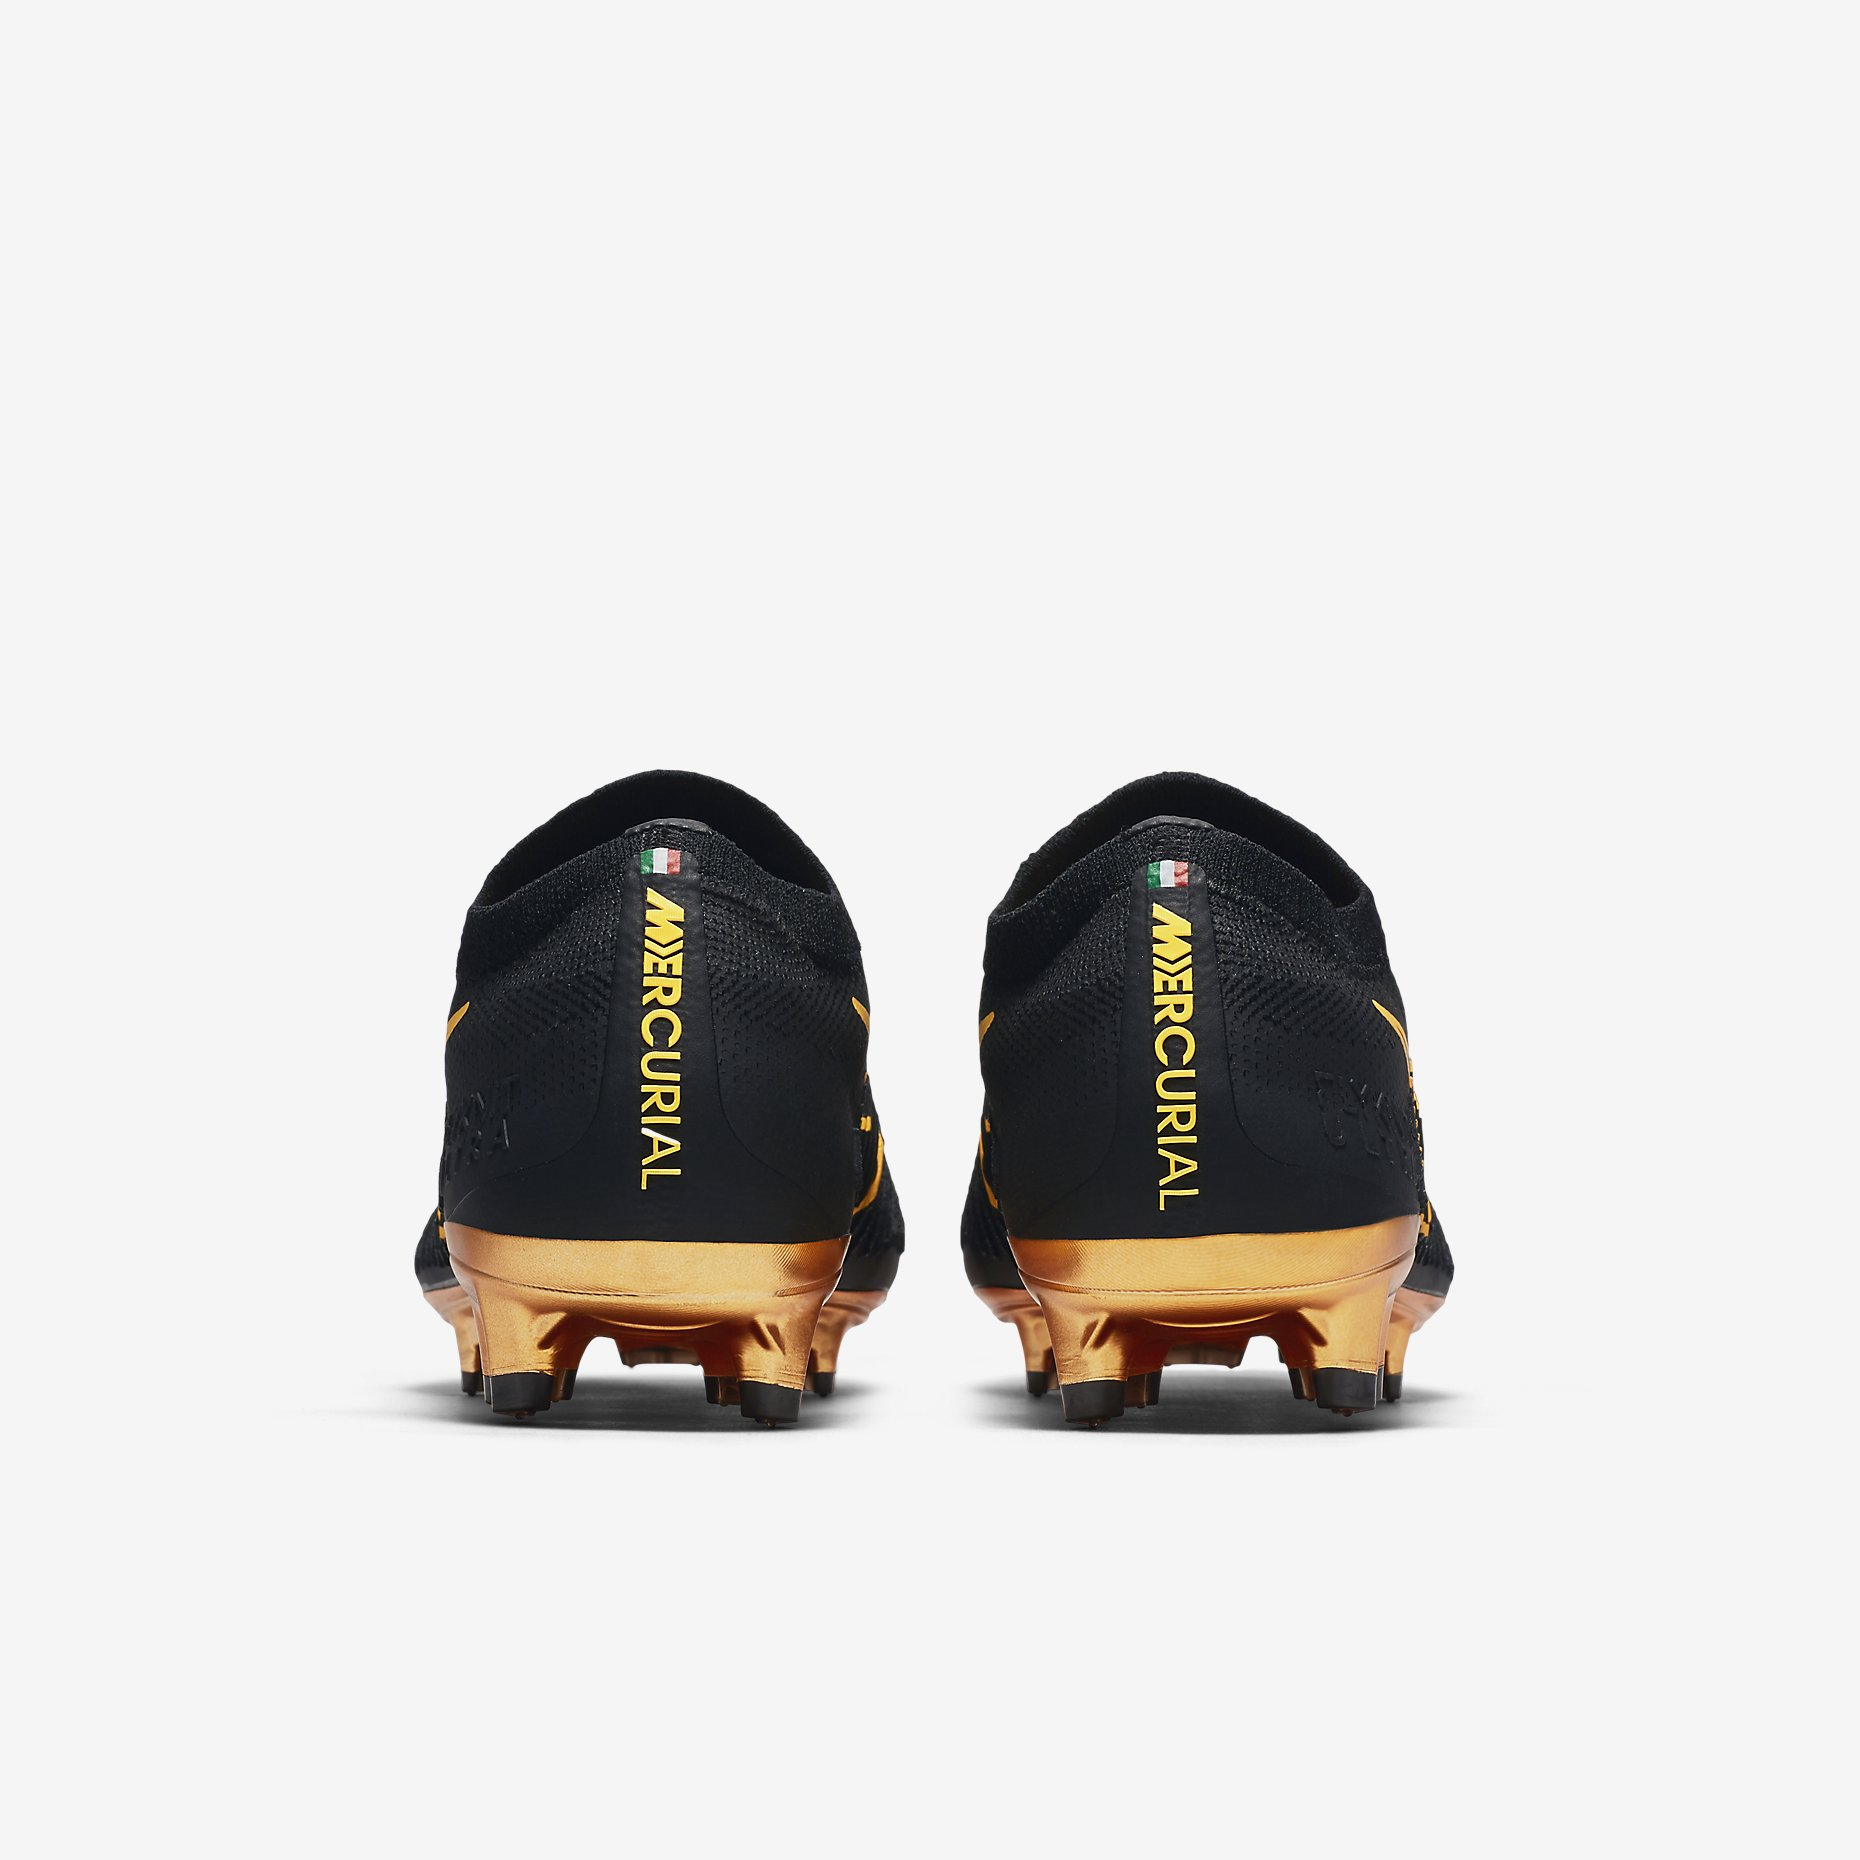 95dc17102aafb ... Click to enlarge image  nike flyknit ultra fg black metallic vivid gold black f.jpg ...